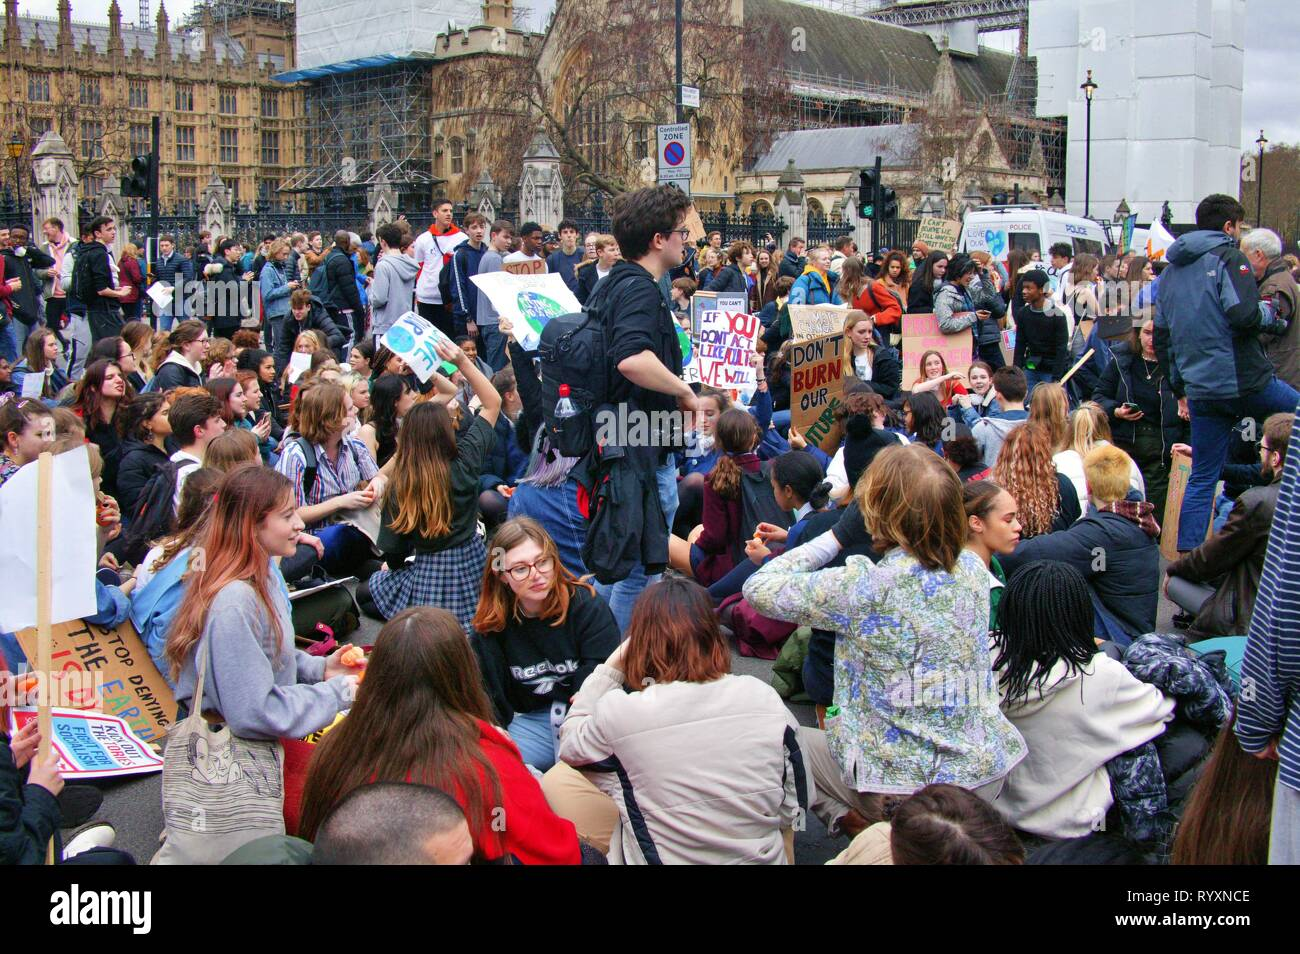 London, UK. 15th Mar 2019. 2nd UK-wide Youth Strike for Climate brings Parliament Square and Westminster Bridge to a standstill after protesters block traffic into two main routes into the area. Credit: Knelstrom Ltd/Alamy Live News Stock Photo